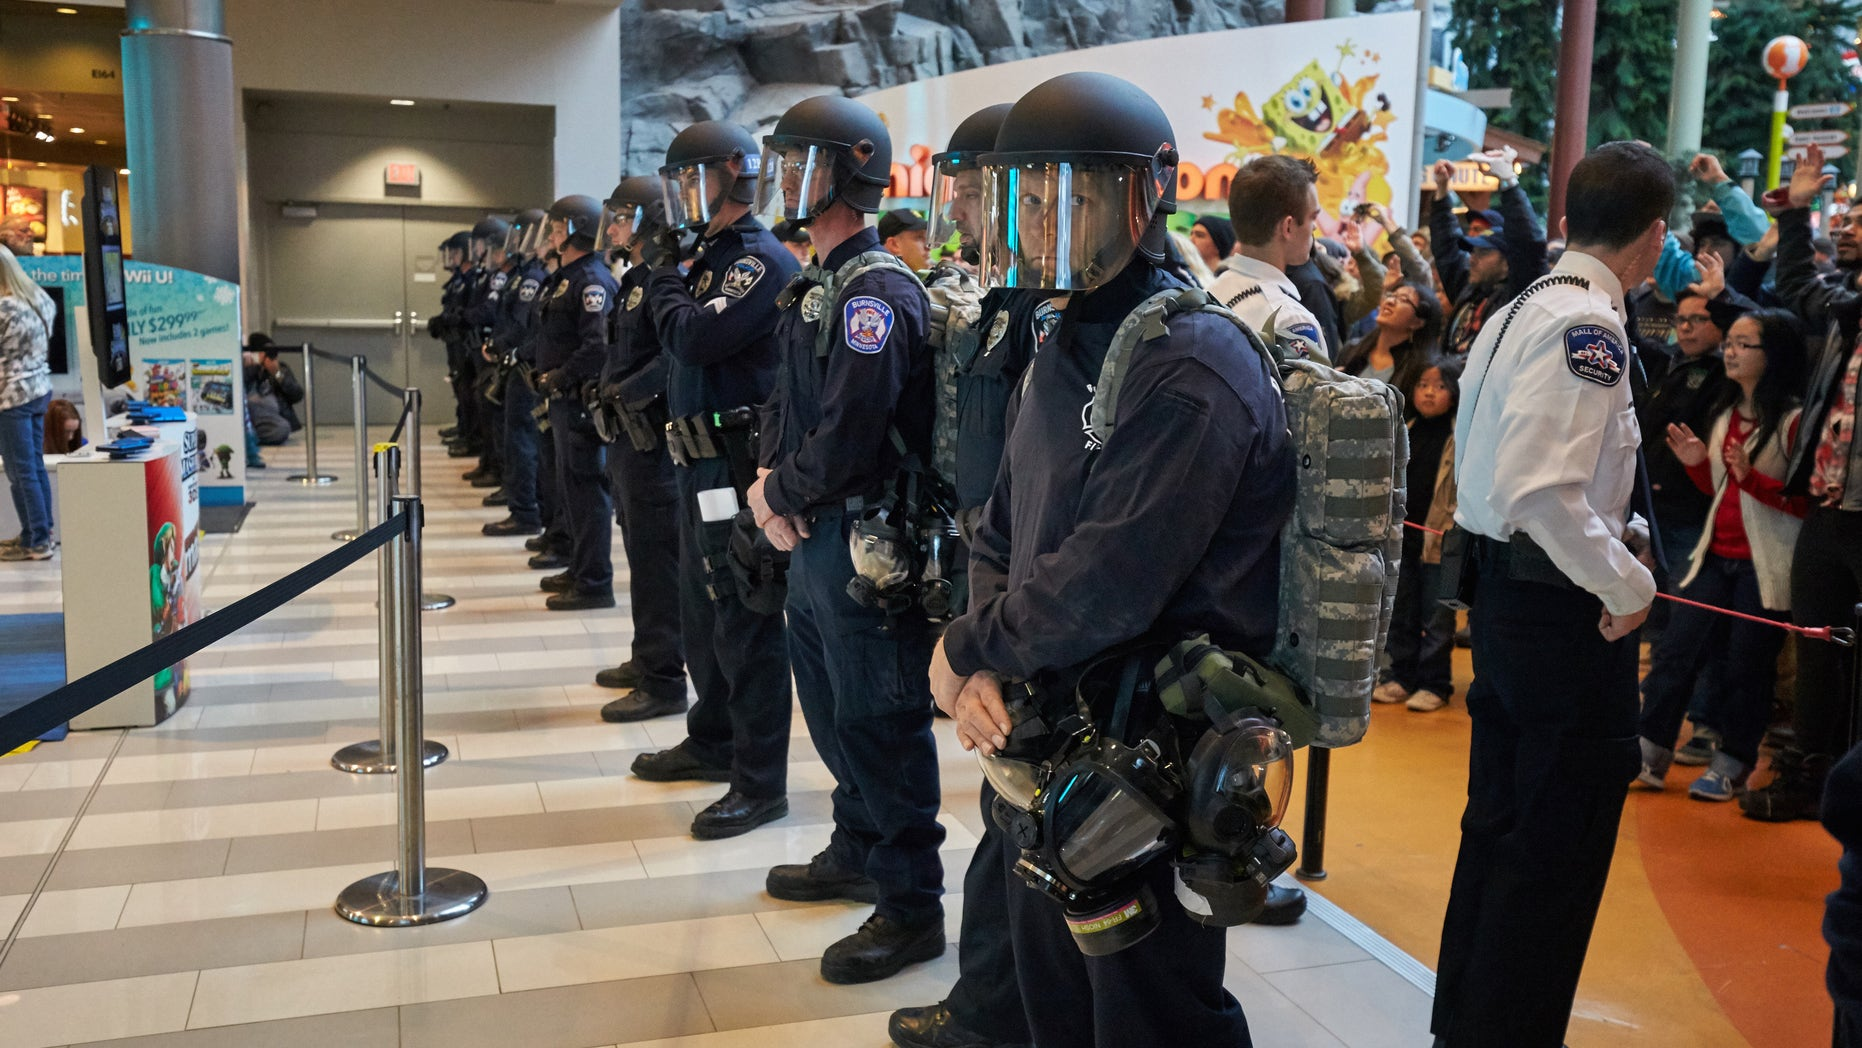 """BLOOMINGTON, MN - DECEMBER 20: Police move thousands of protesters from the group """"Black Lives Matter"""" out of the mall after they disrupted holiday shoppers on December 20, 2014 at Mall of America in Bloomington, Minnesota. (Photo by Adam Bettcher/Getty Images)"""